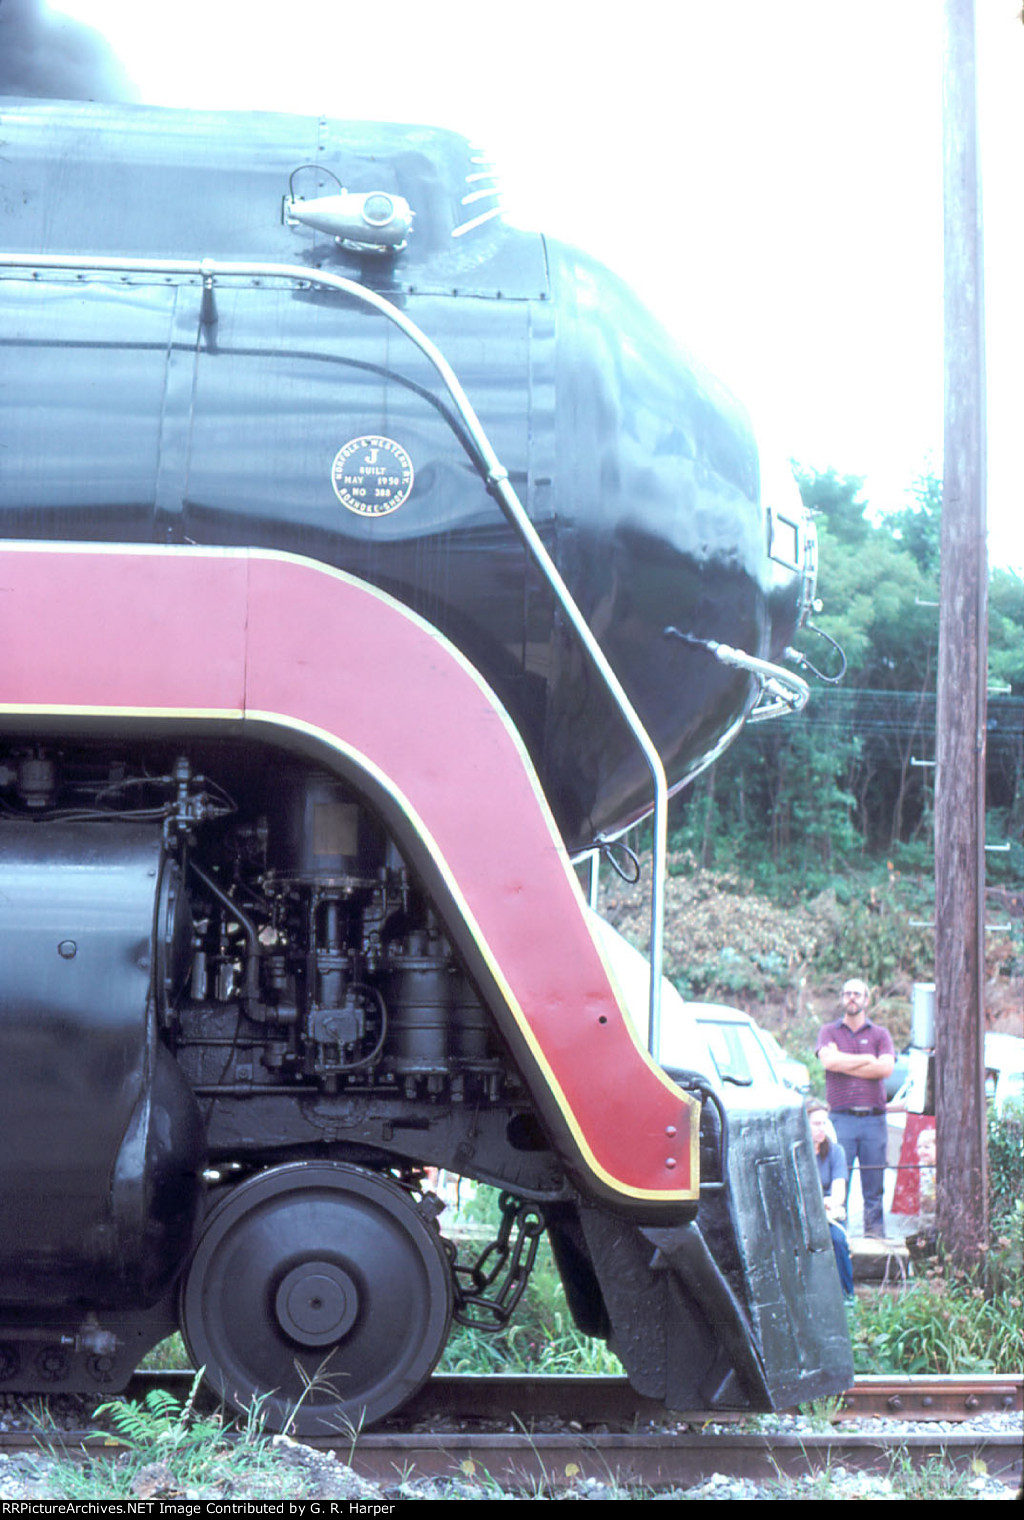 Profile shot of 611's nose